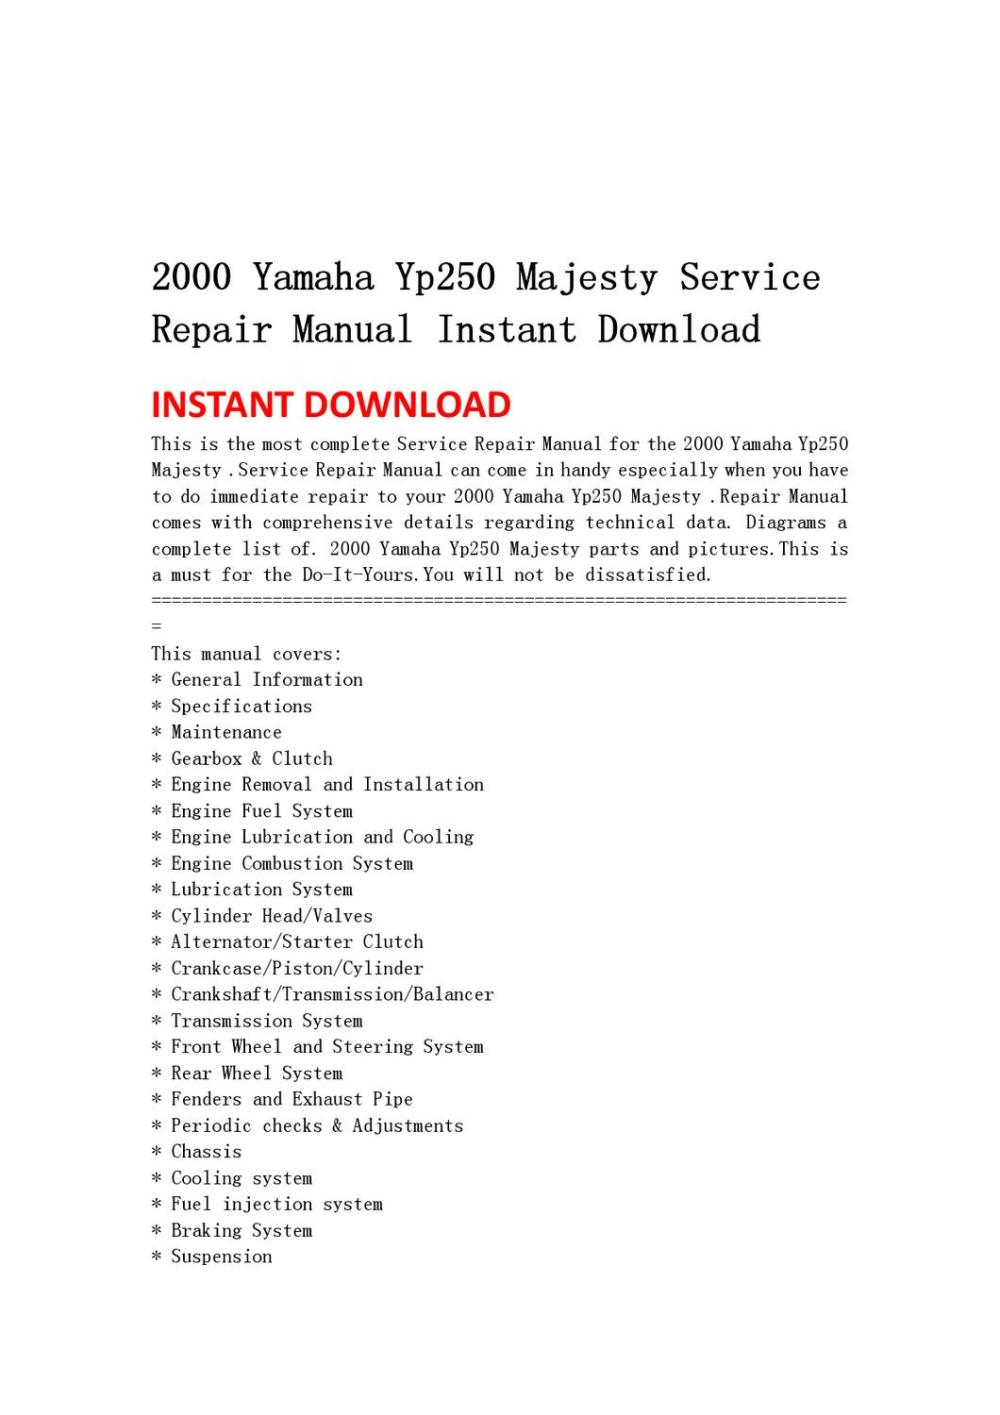 medium resolution of 2000 yamaha yp250 majesty service repair manual instant download by light switch wiring diagram 2000 yamaha